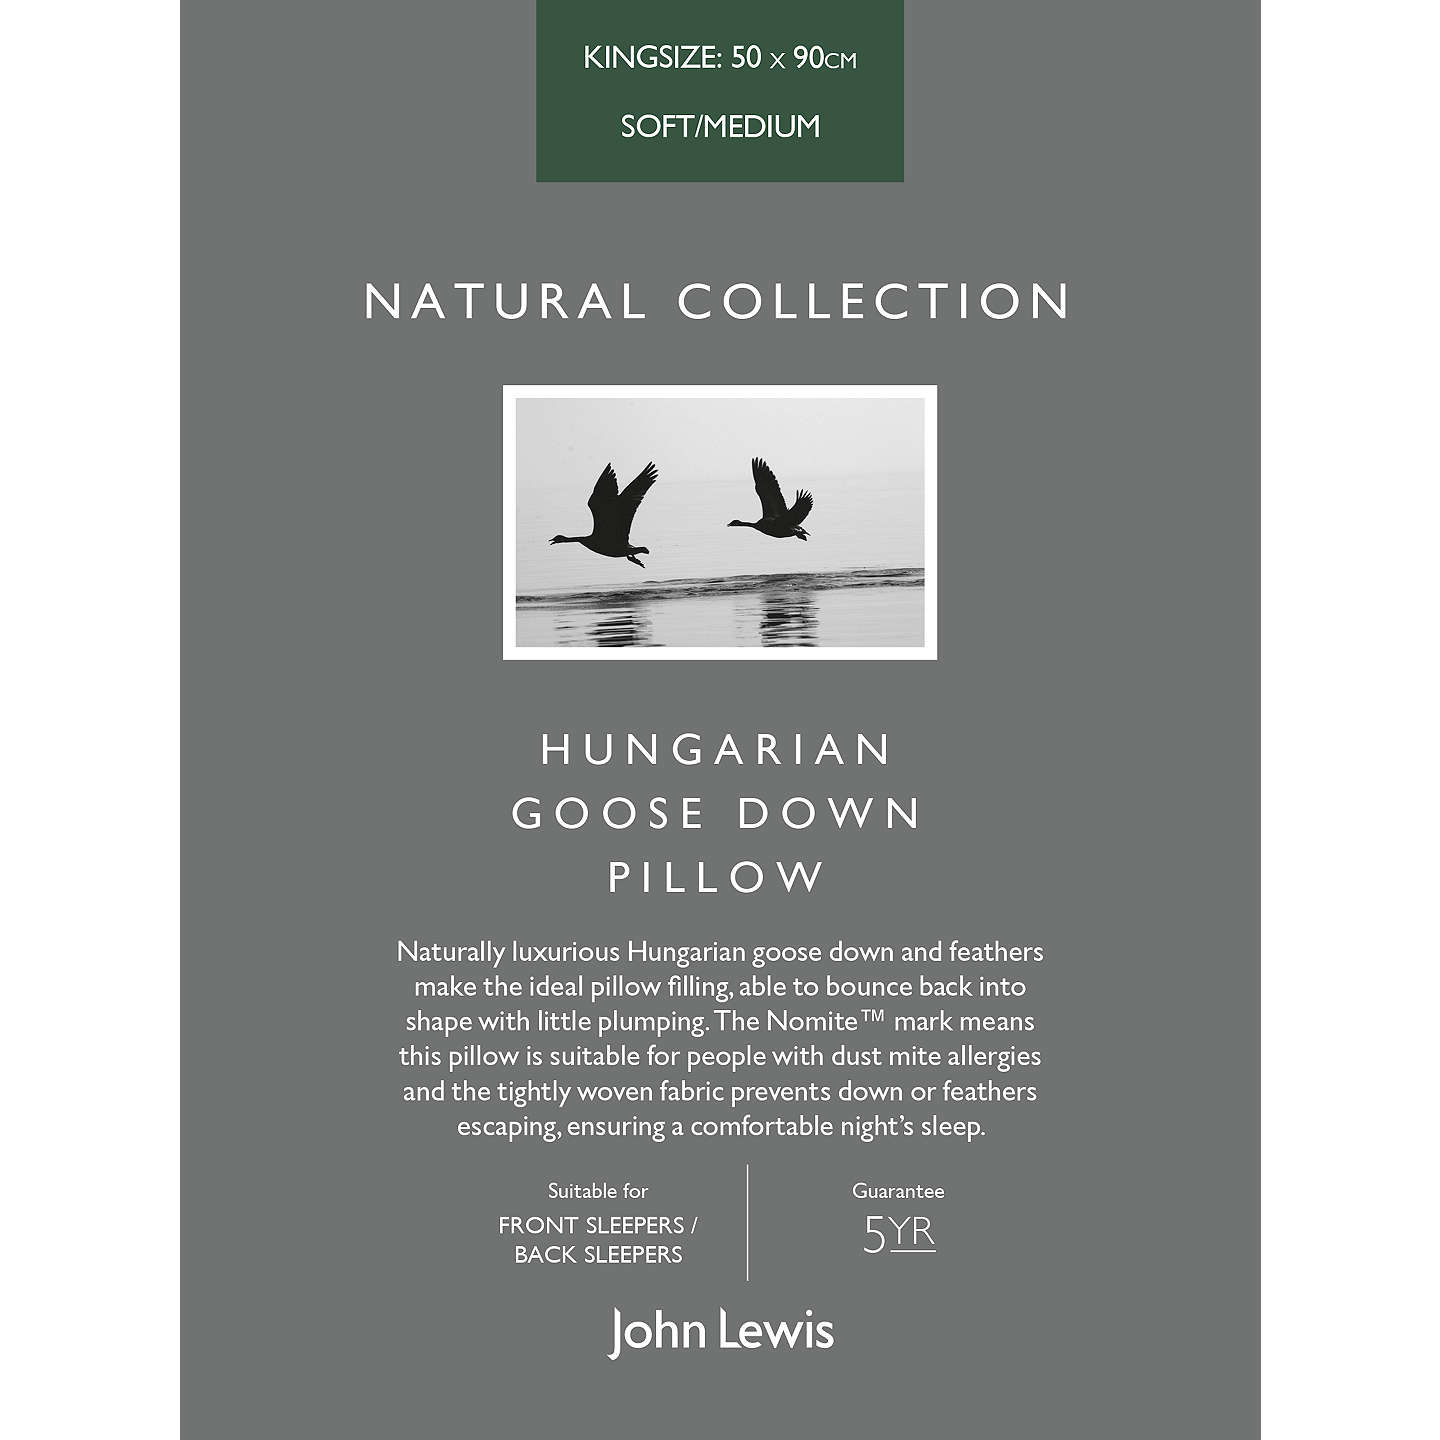 BuyJohn Lewis Natural Collection Hungarian Goose Down Kingsize Pillow, Soft/Medium Online at johnlewis.com